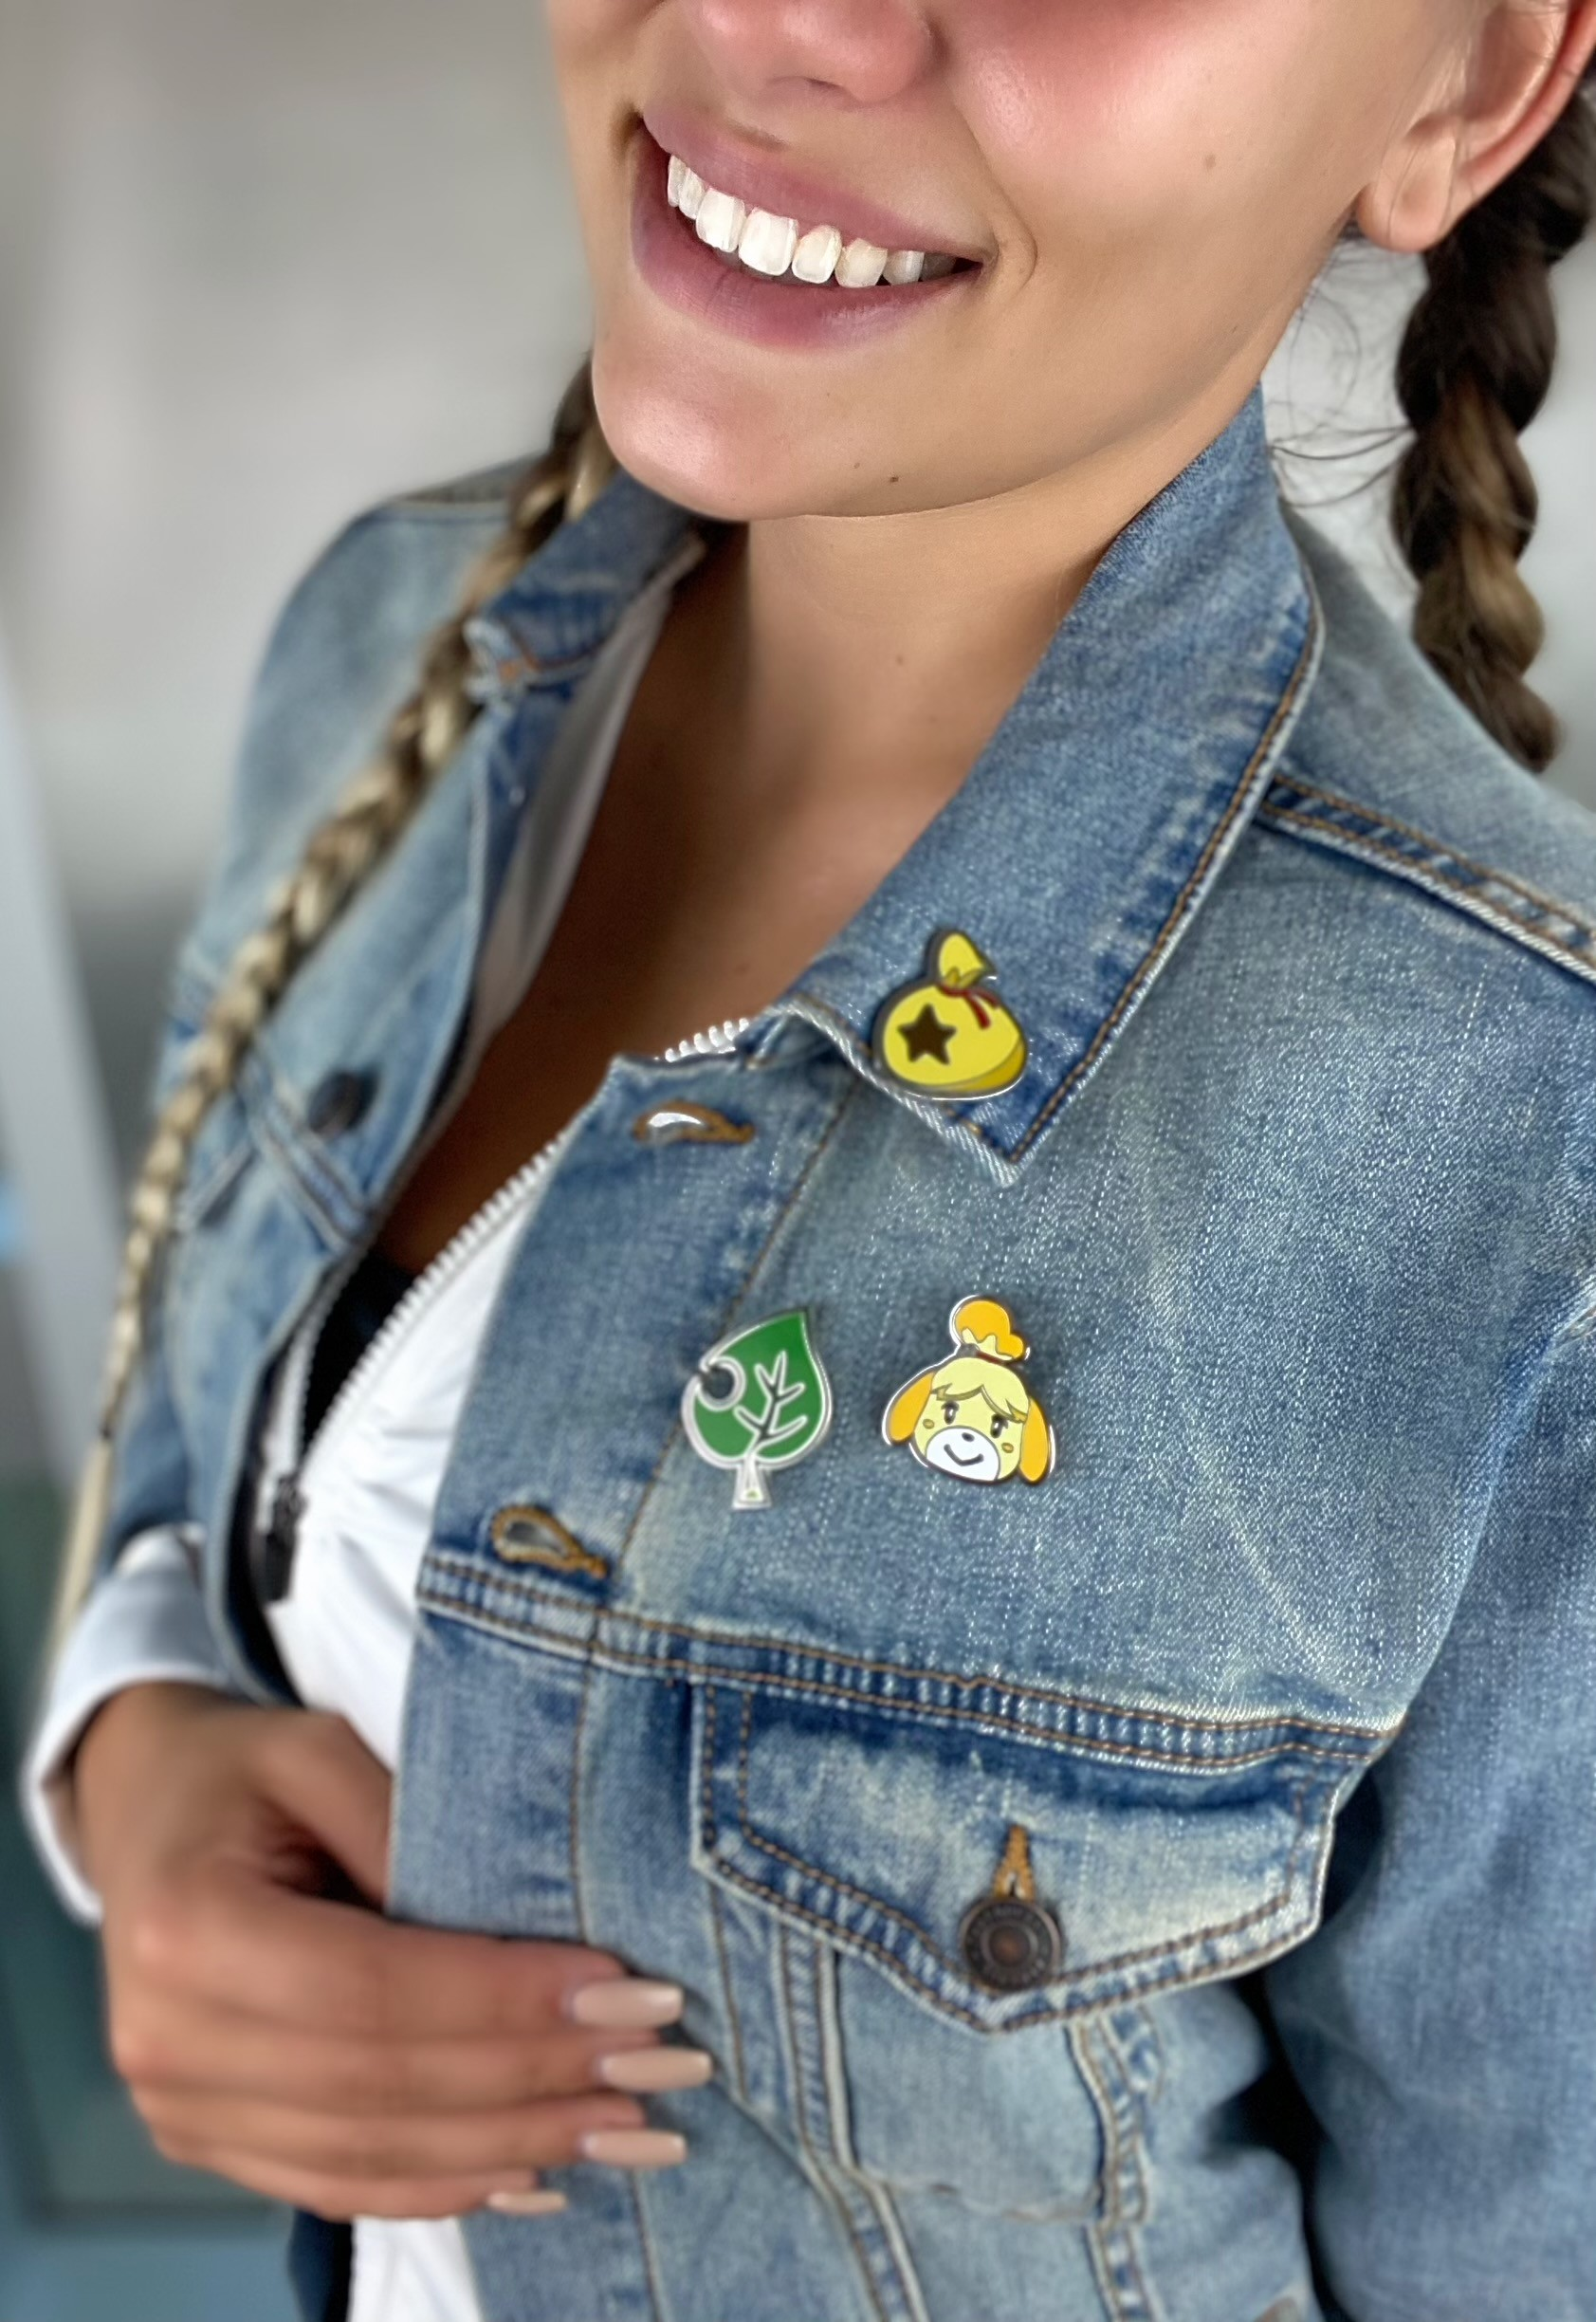 Animal Crossing Icons Lapel Pin Set Image 1